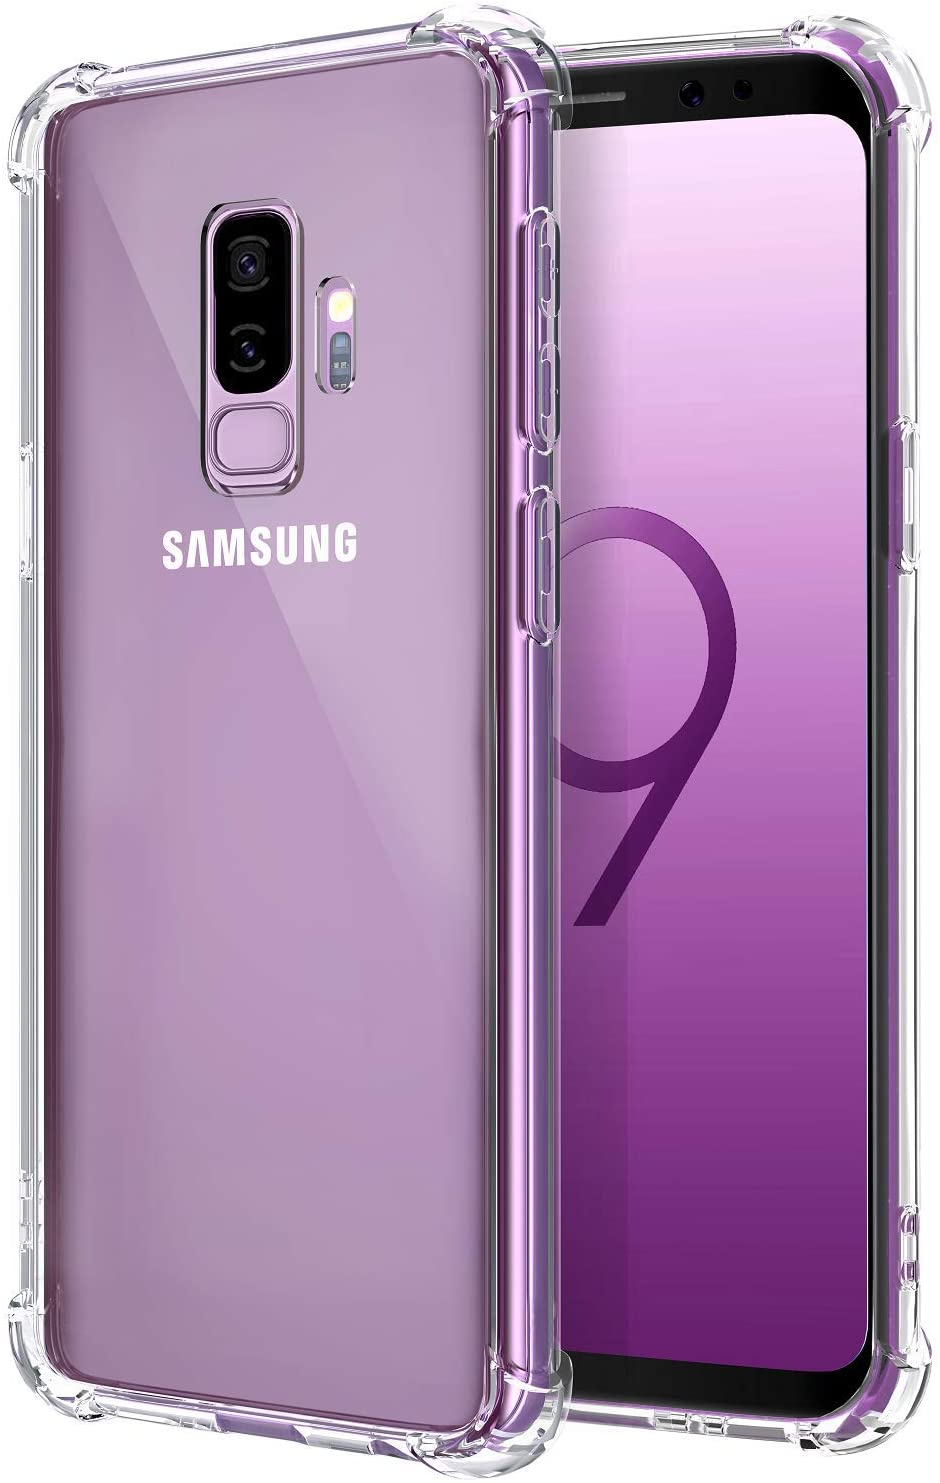 Comsoon Galaxy S9 Plus Case, [Drop Cushion] [Crystal Clear] Soft TPU Bumper Slim Protective Case Cover with Raised Bezels for Samsung Galaxy S9 Plus 2018 (Clear)